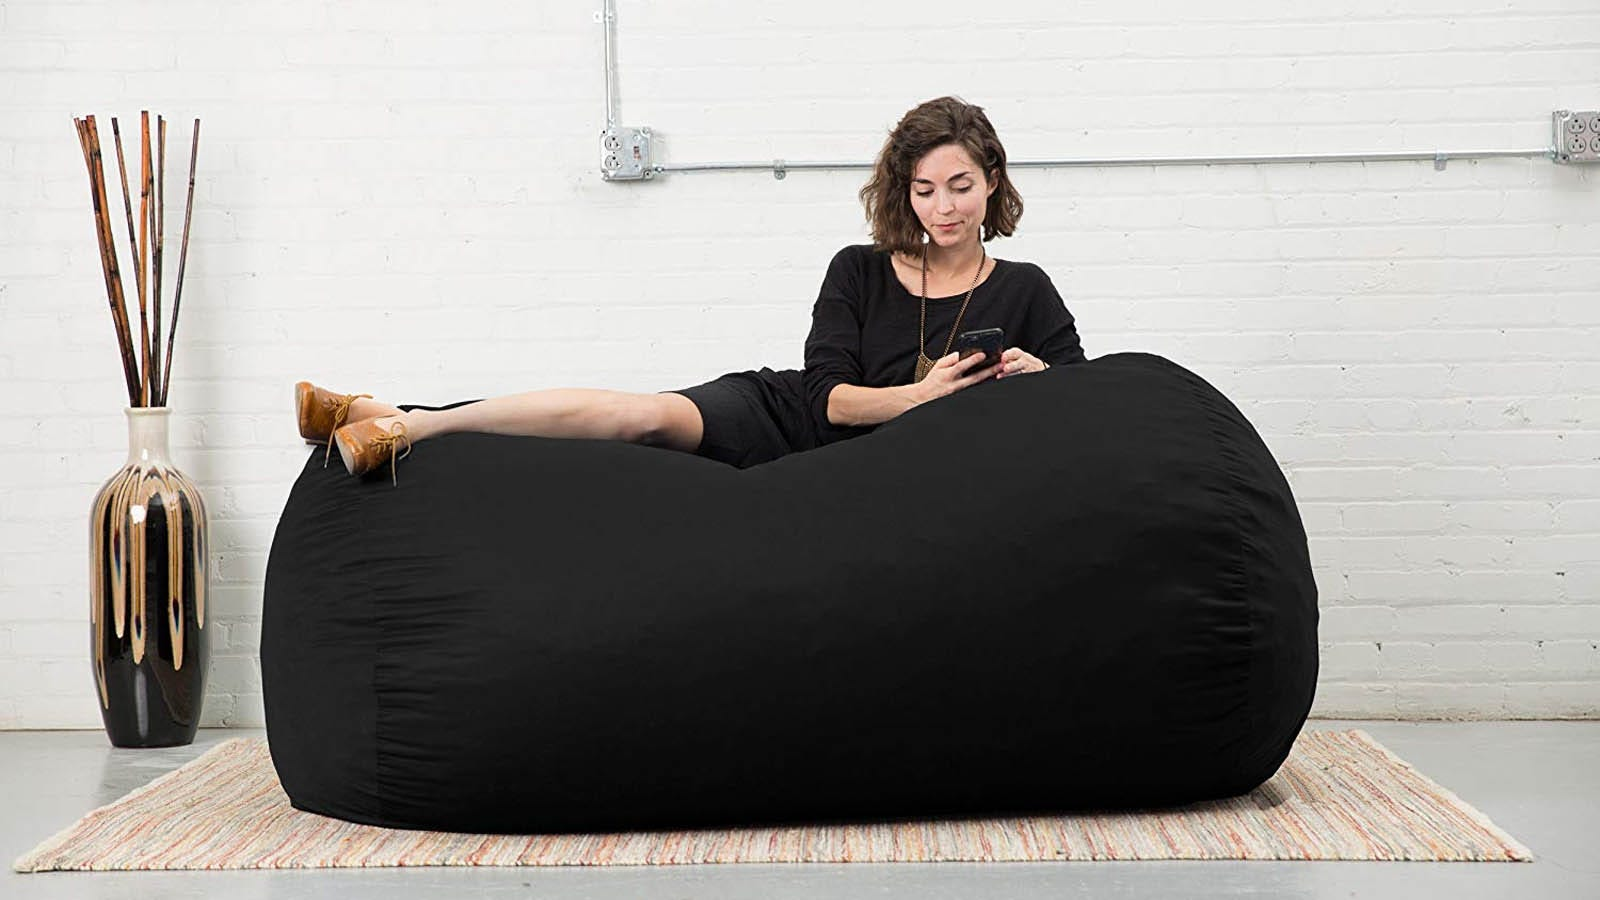 Bean Bag Chairs Are For Kid, Right? Not So Fast. Thereu0027s A Whole New  Generation Of Bean Bags Built With Adult Sized Bodies (and Comfort) In Mind  And Theyu0027re ...